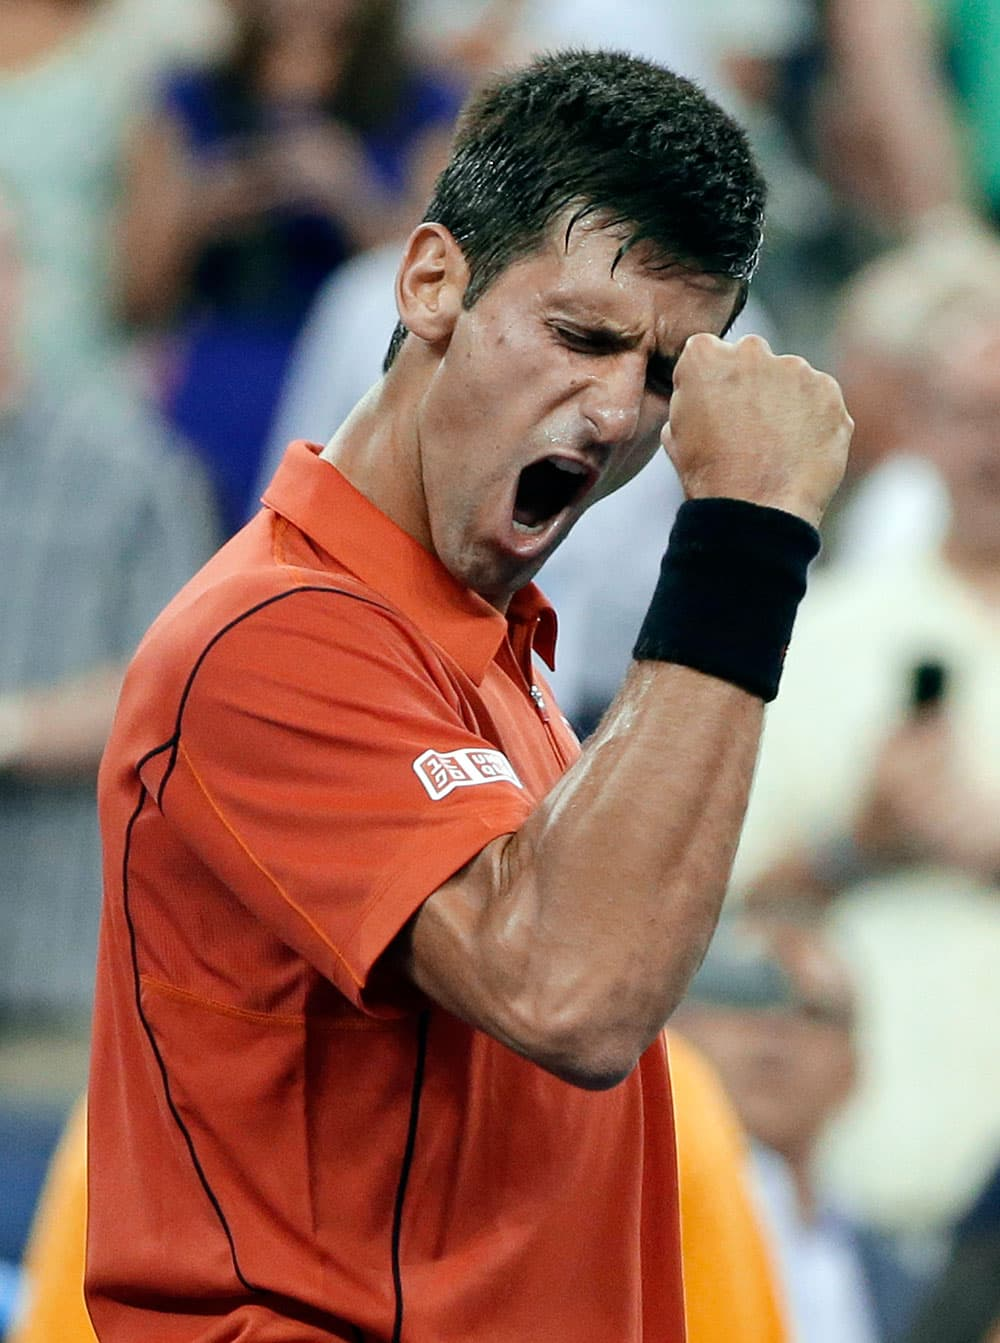 Novak Djokovic, of Serbia, reacts after defeating Ricardas Berankis, of Lithuania, in a first round of the US Open tennis tournament.